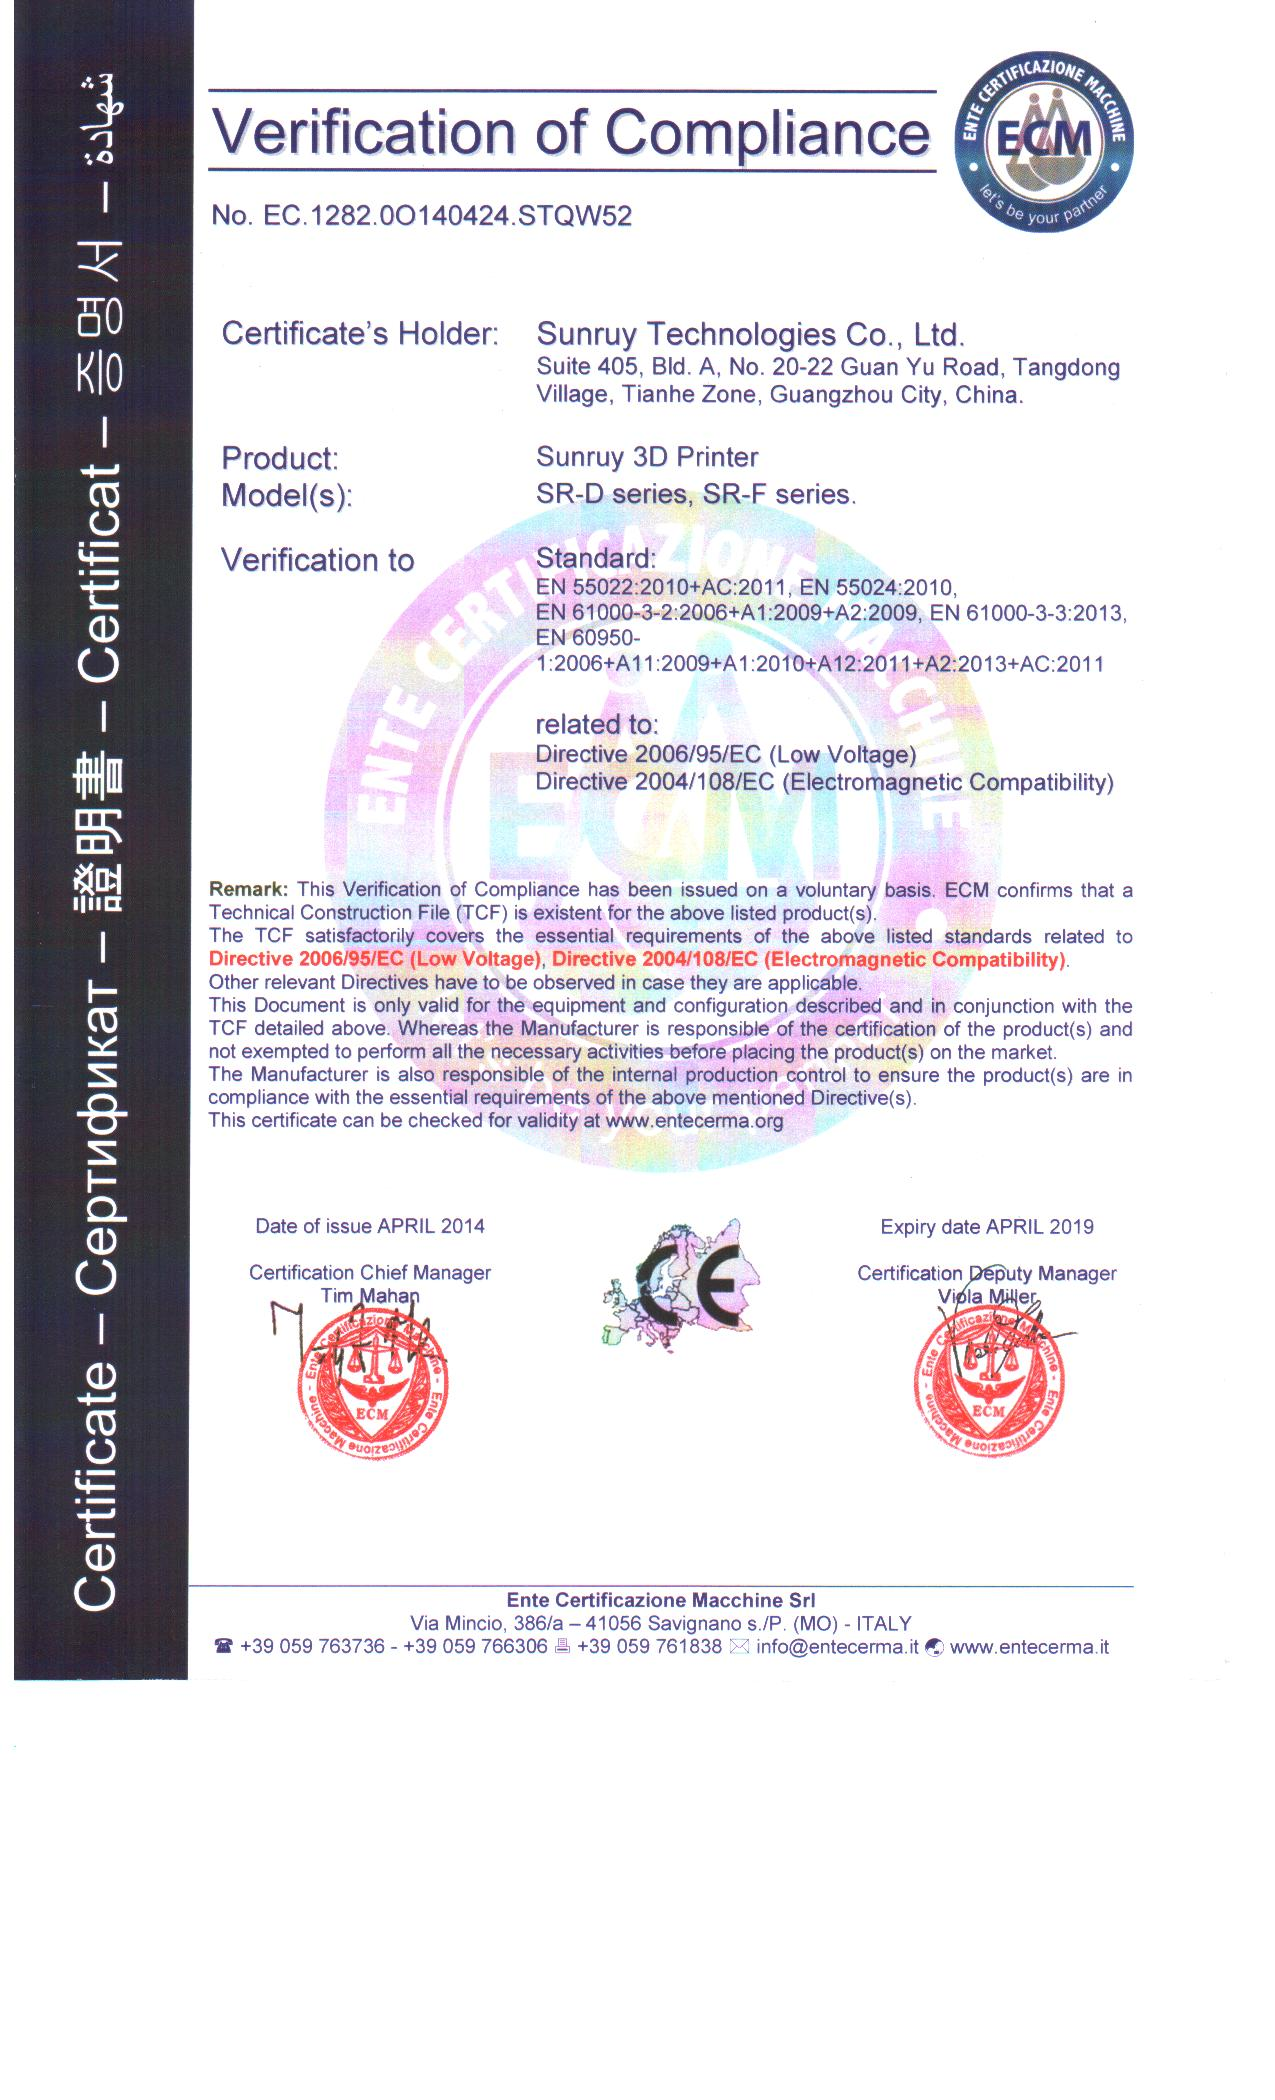 CE Certificate of 3D printer